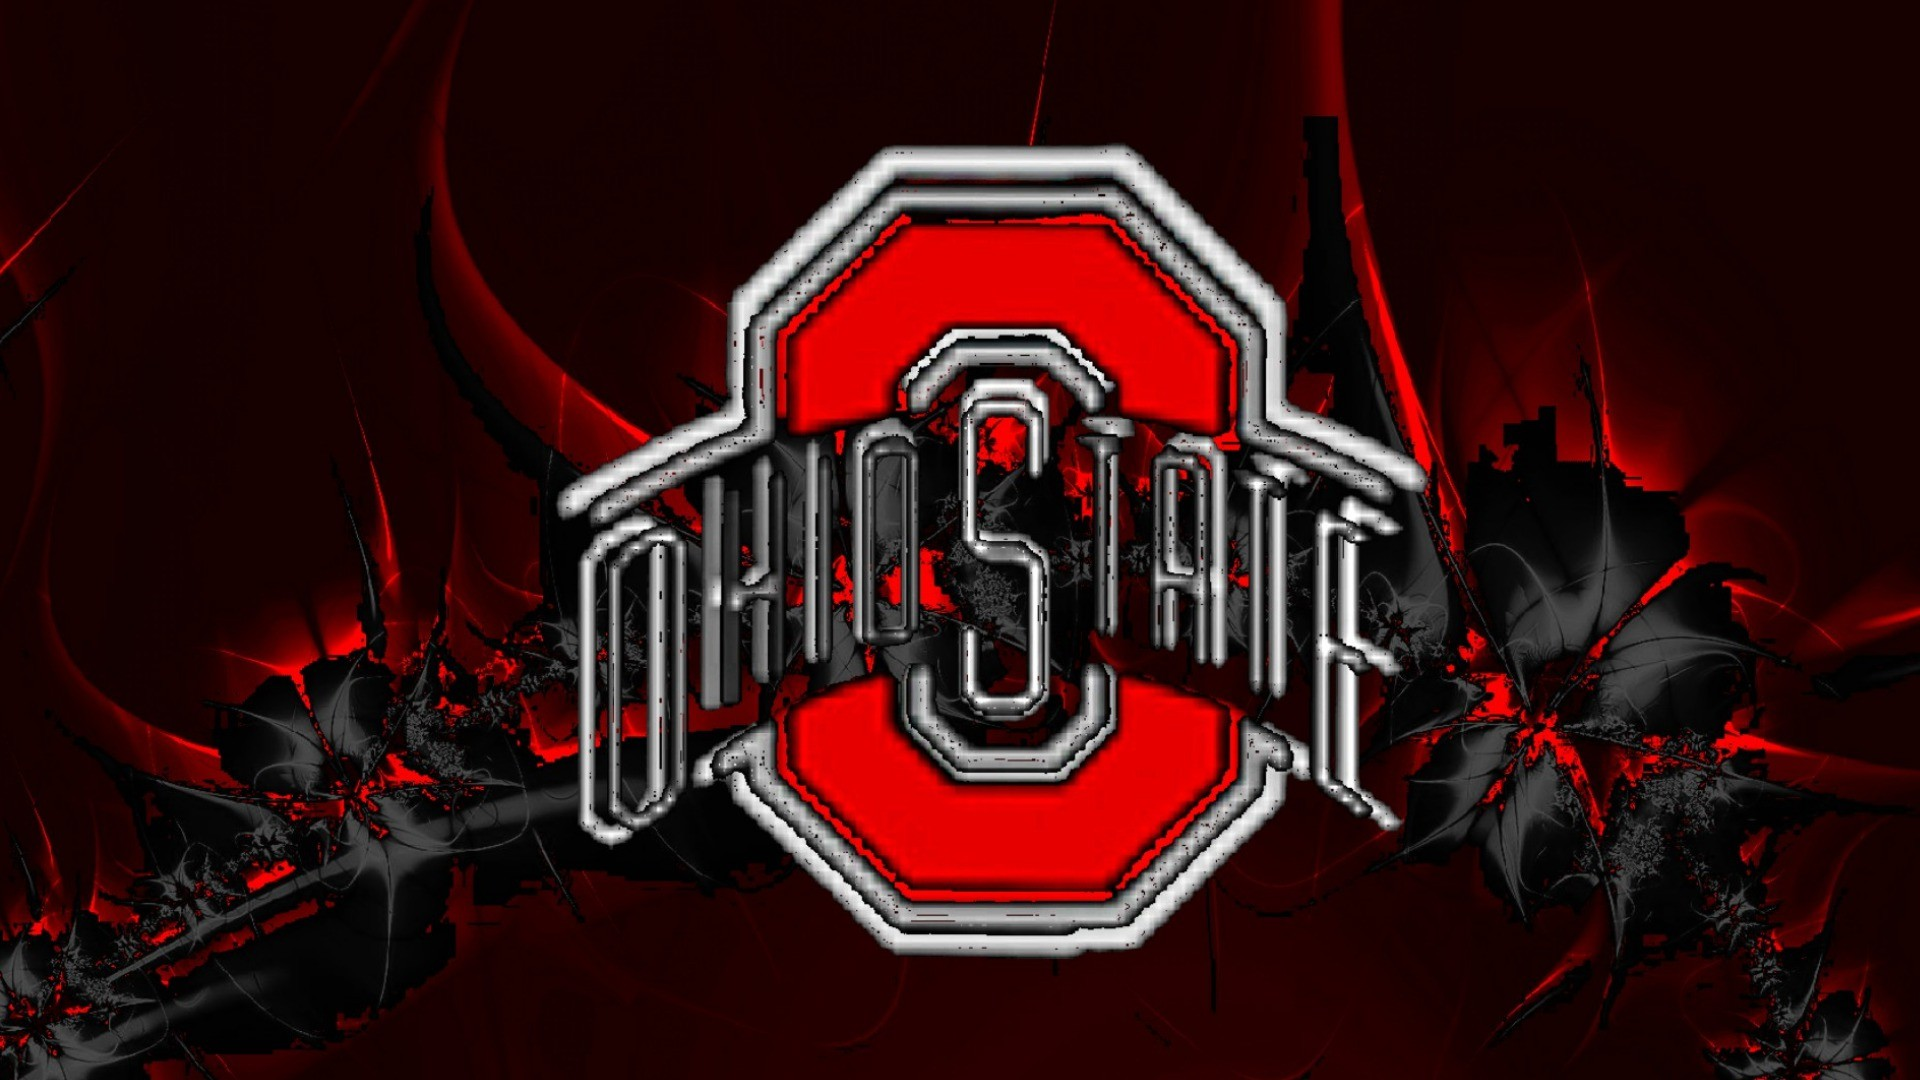 Best Ohio State Wallpapers 77 Images